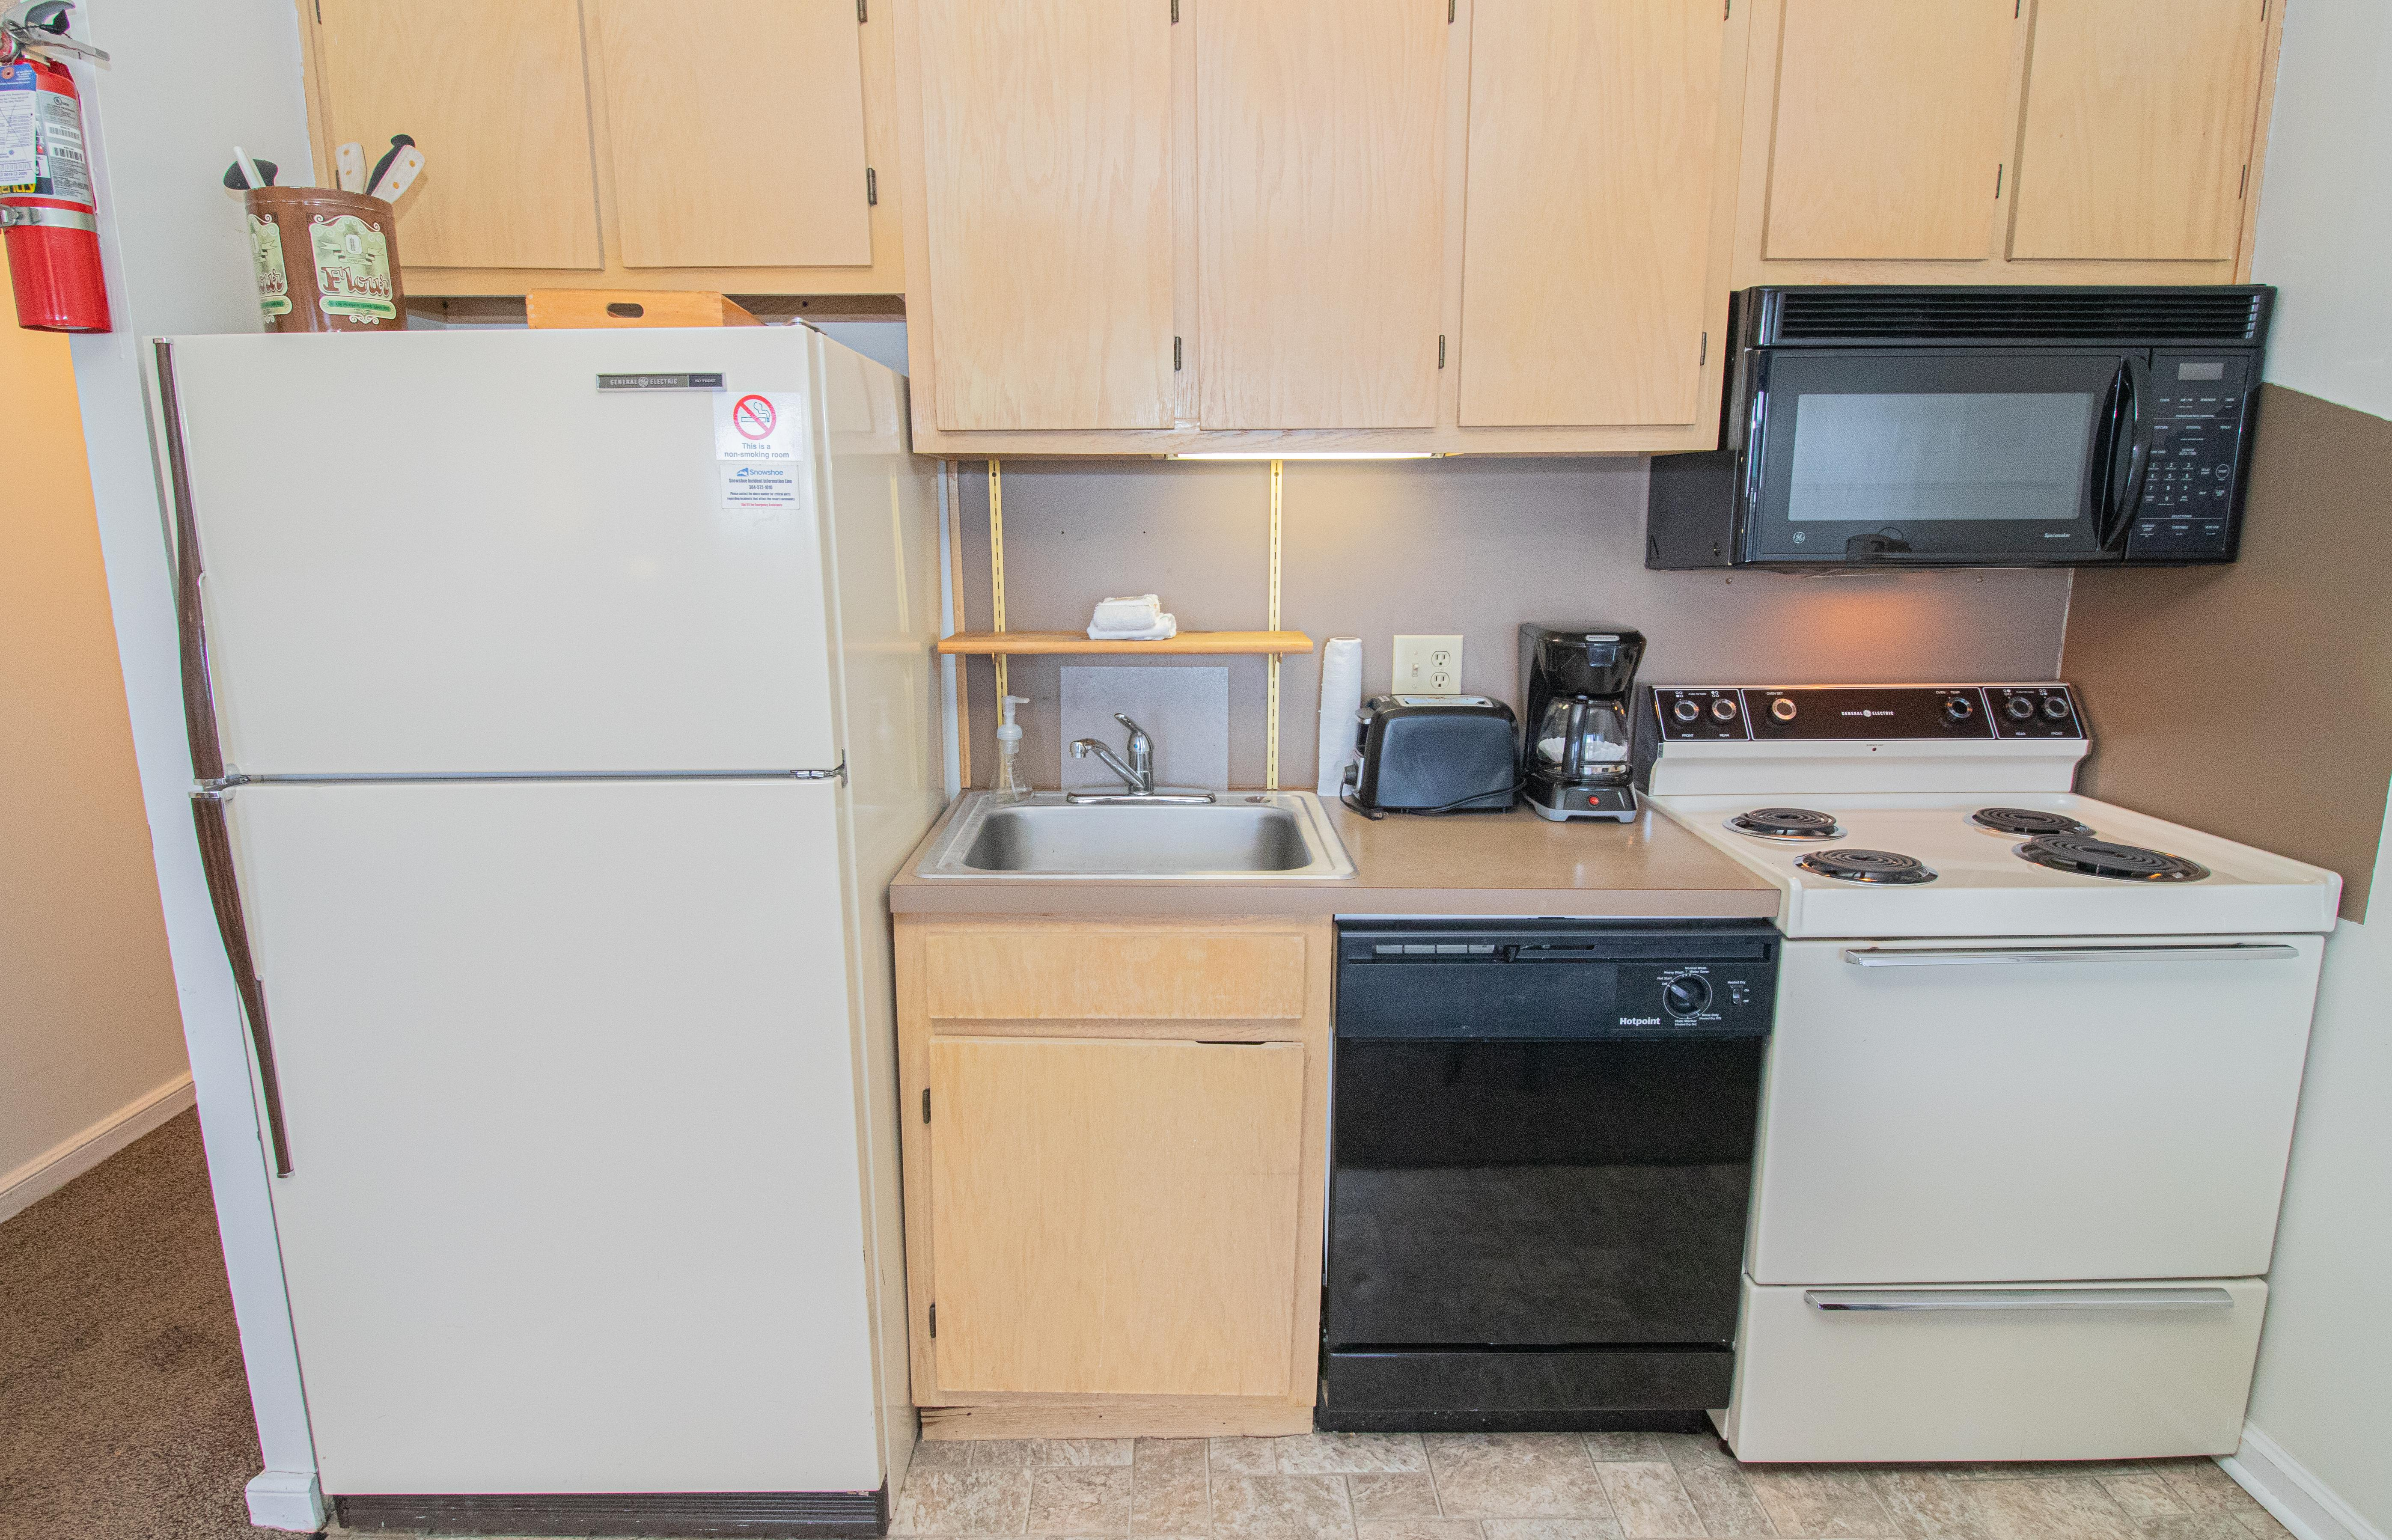 Fully-equipped kitchen with stove, dishwasher, refrigerator, etc.